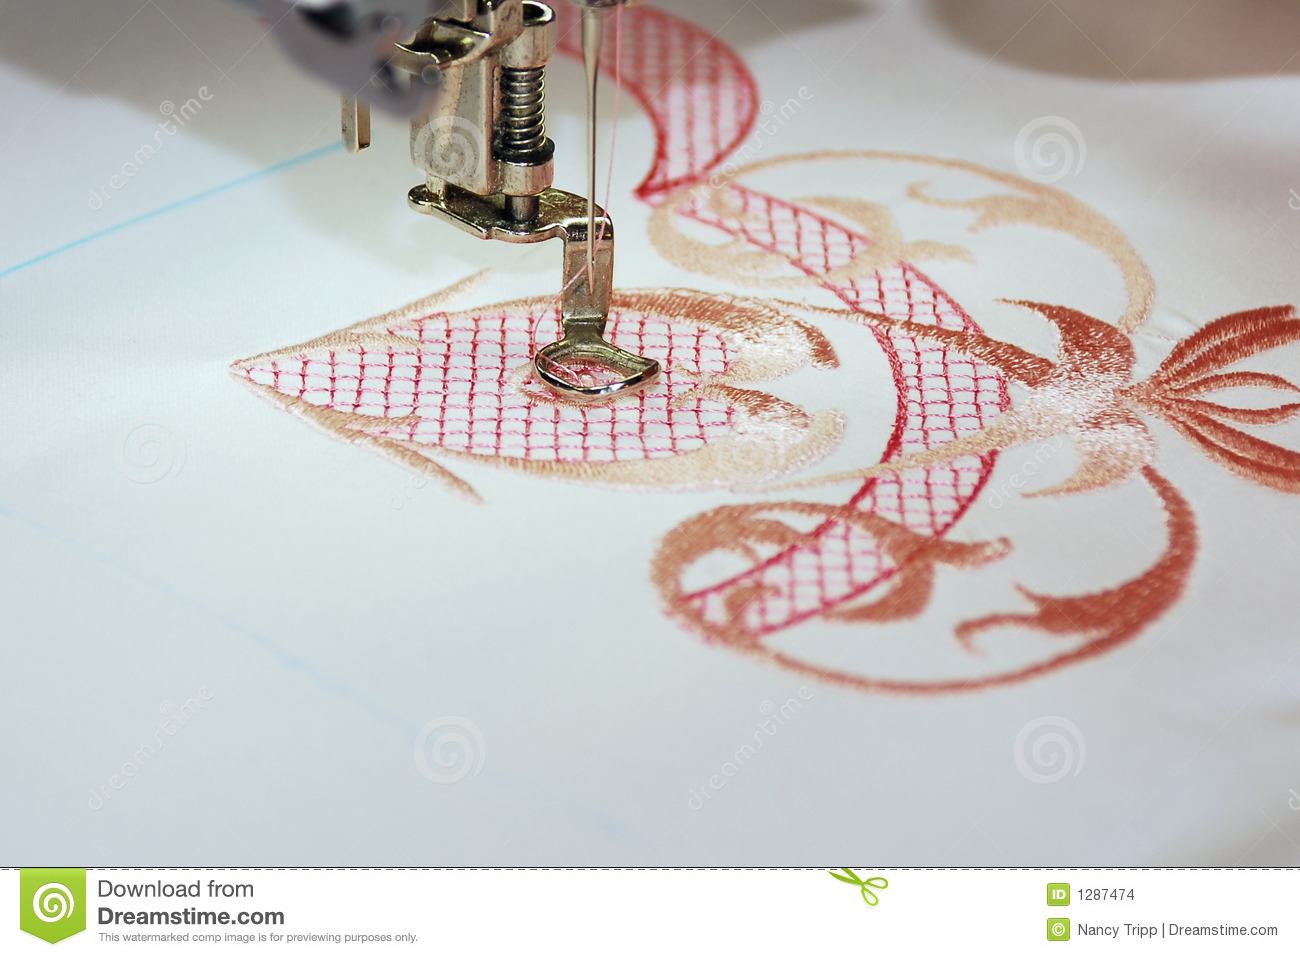 Machine embroidery stock photo image of pastime texture